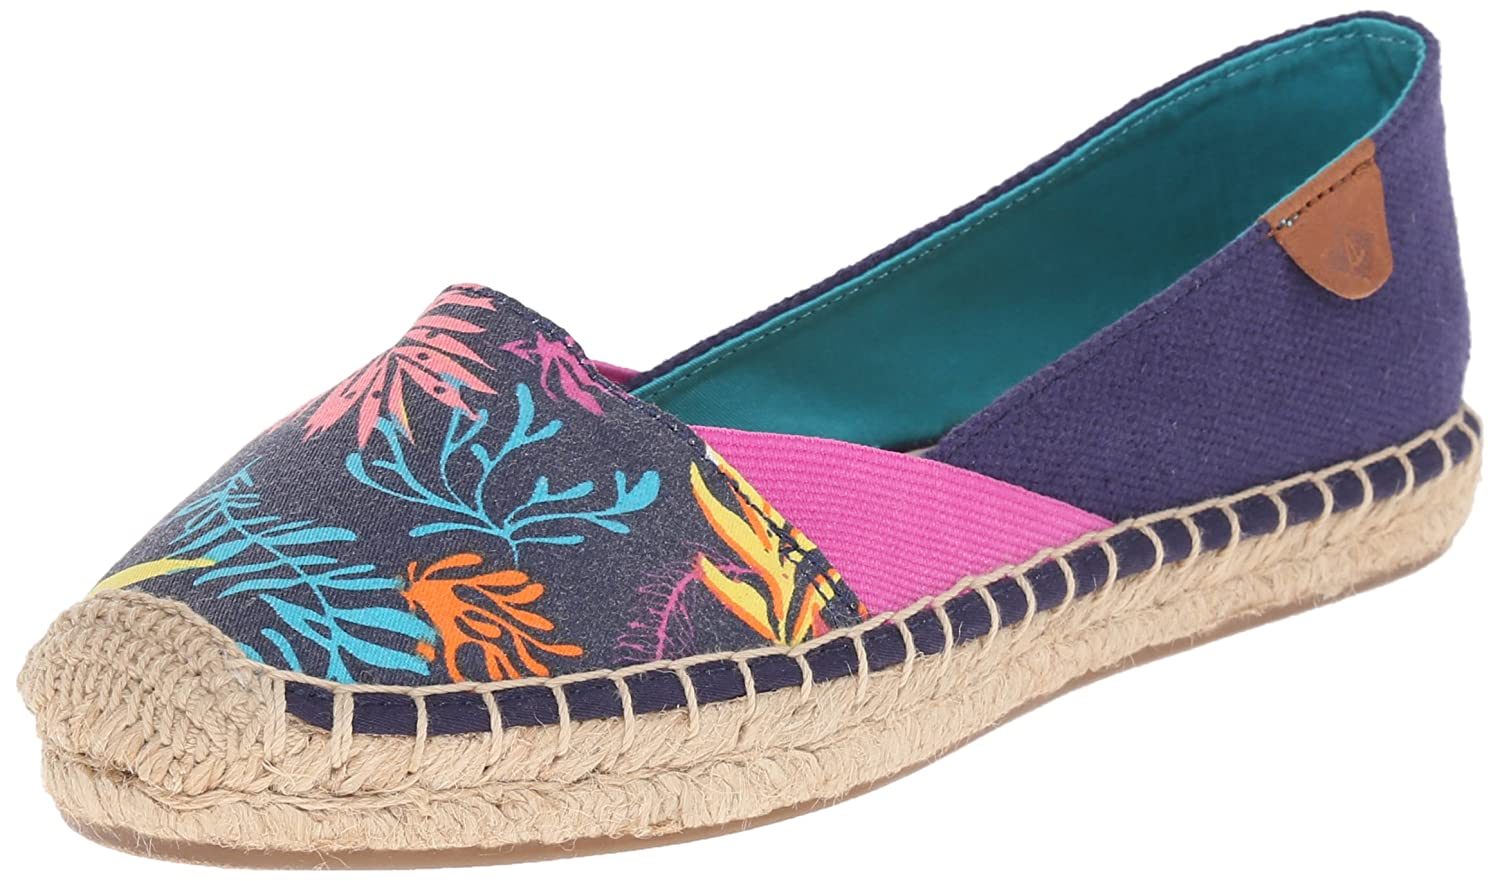 Sperry Top-Sider Women's Katama Cape Ballet Flat B01015RYKM 7.5 B(M) US|Prints Blue Seaweed